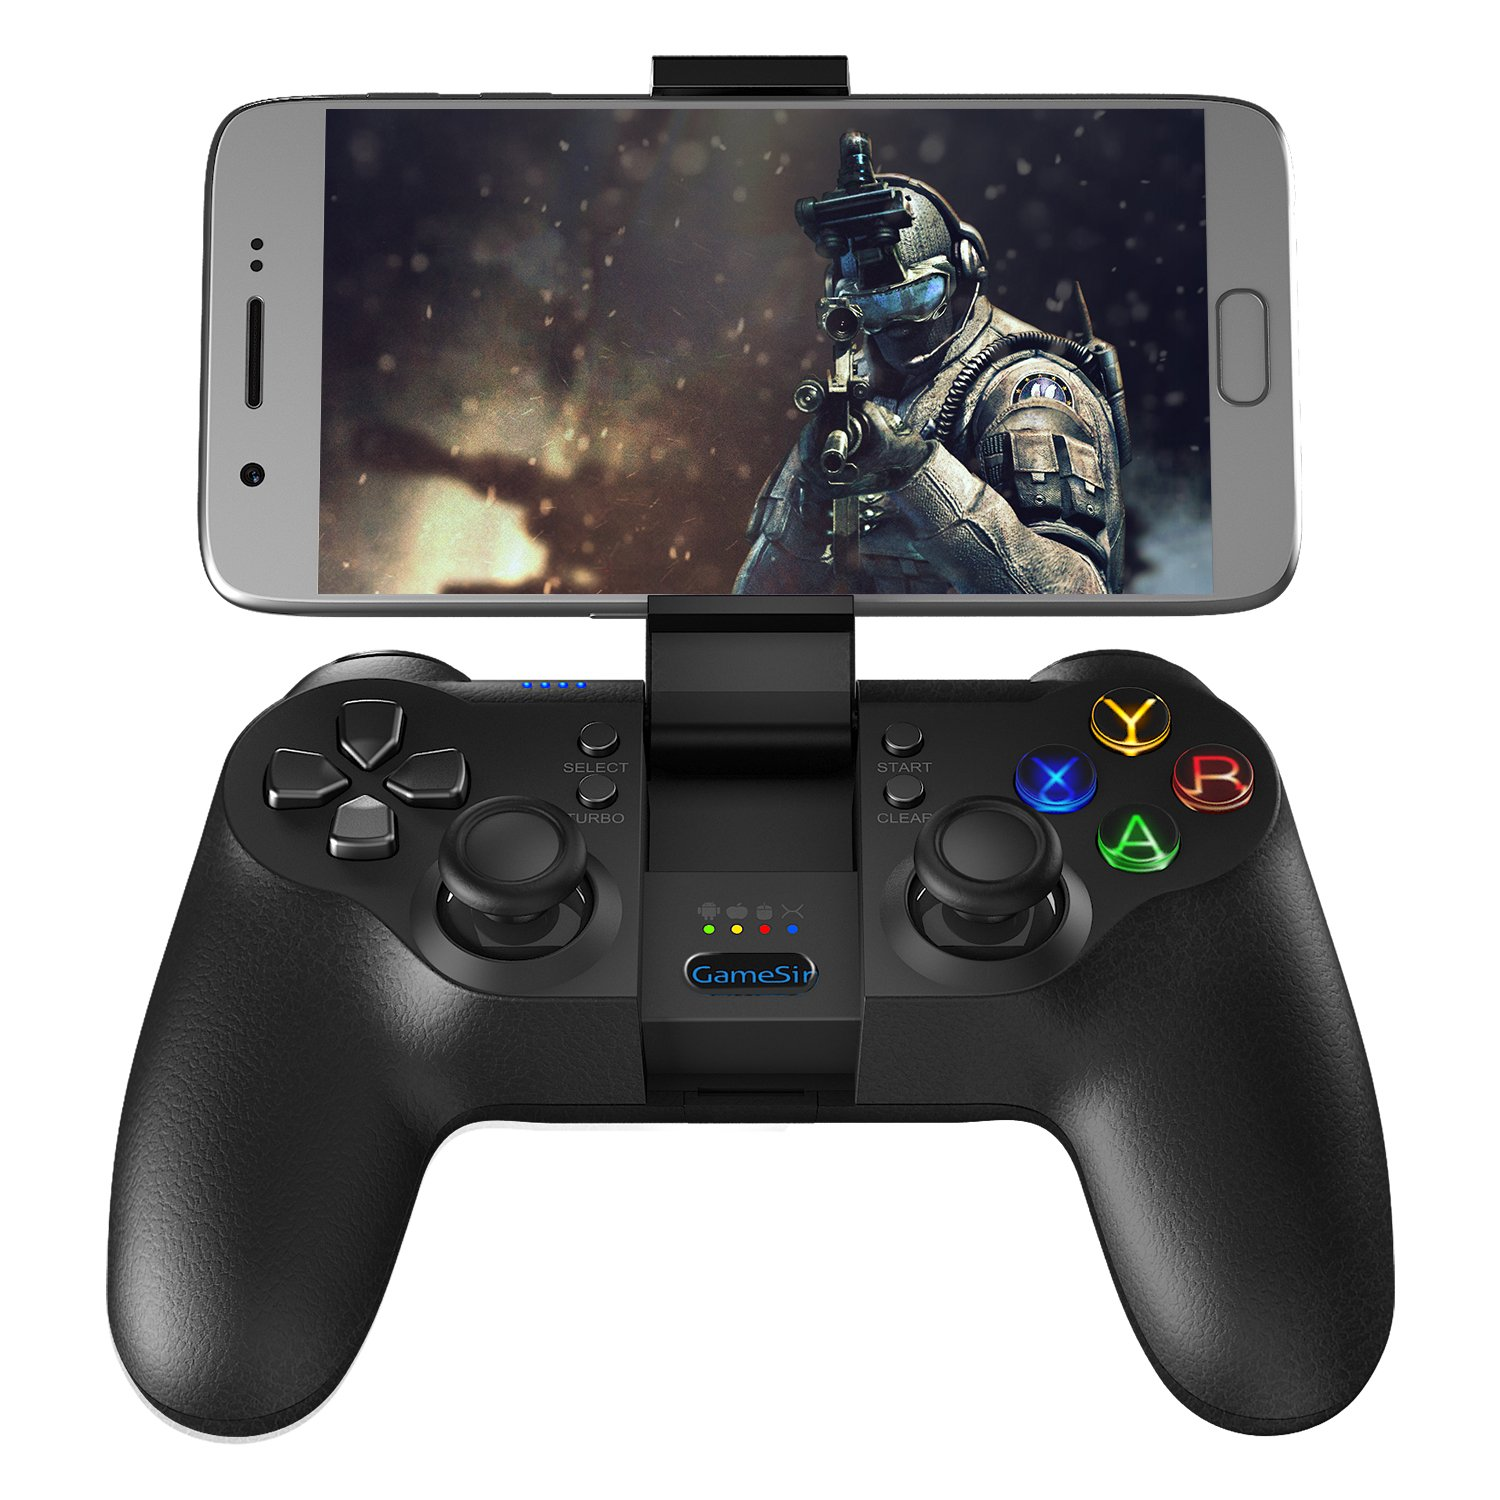 Amazon.com: GameSir T1s Gaming Controller 2.4G Wireless Gamepad for ...